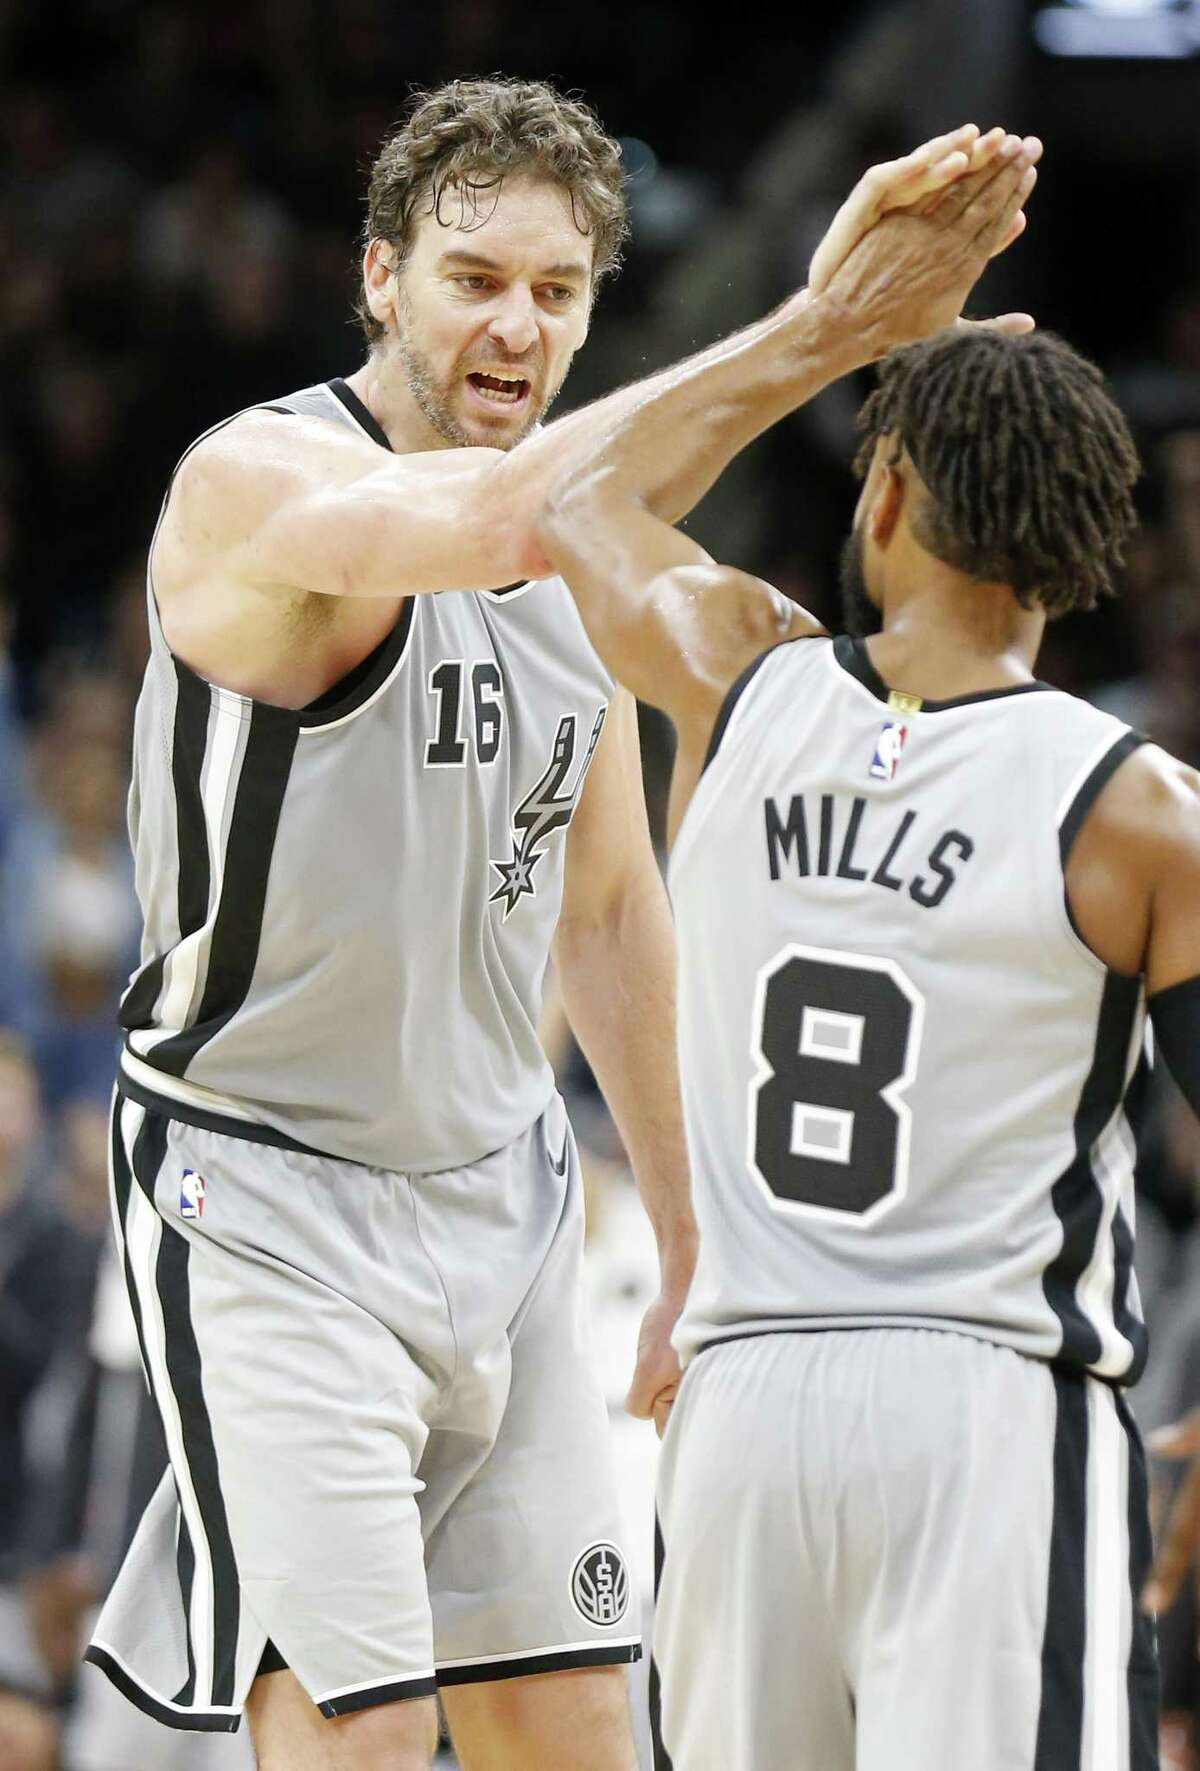 San Antonio Spurs' Pau Gasol celebrates with teammate Patty Mills after scoring a 3-pointer and being fouled during second half action against the Dallas Mavericks Monday Nov. 27, 2017 at the AT&T Center. The Spurs won 115-108.